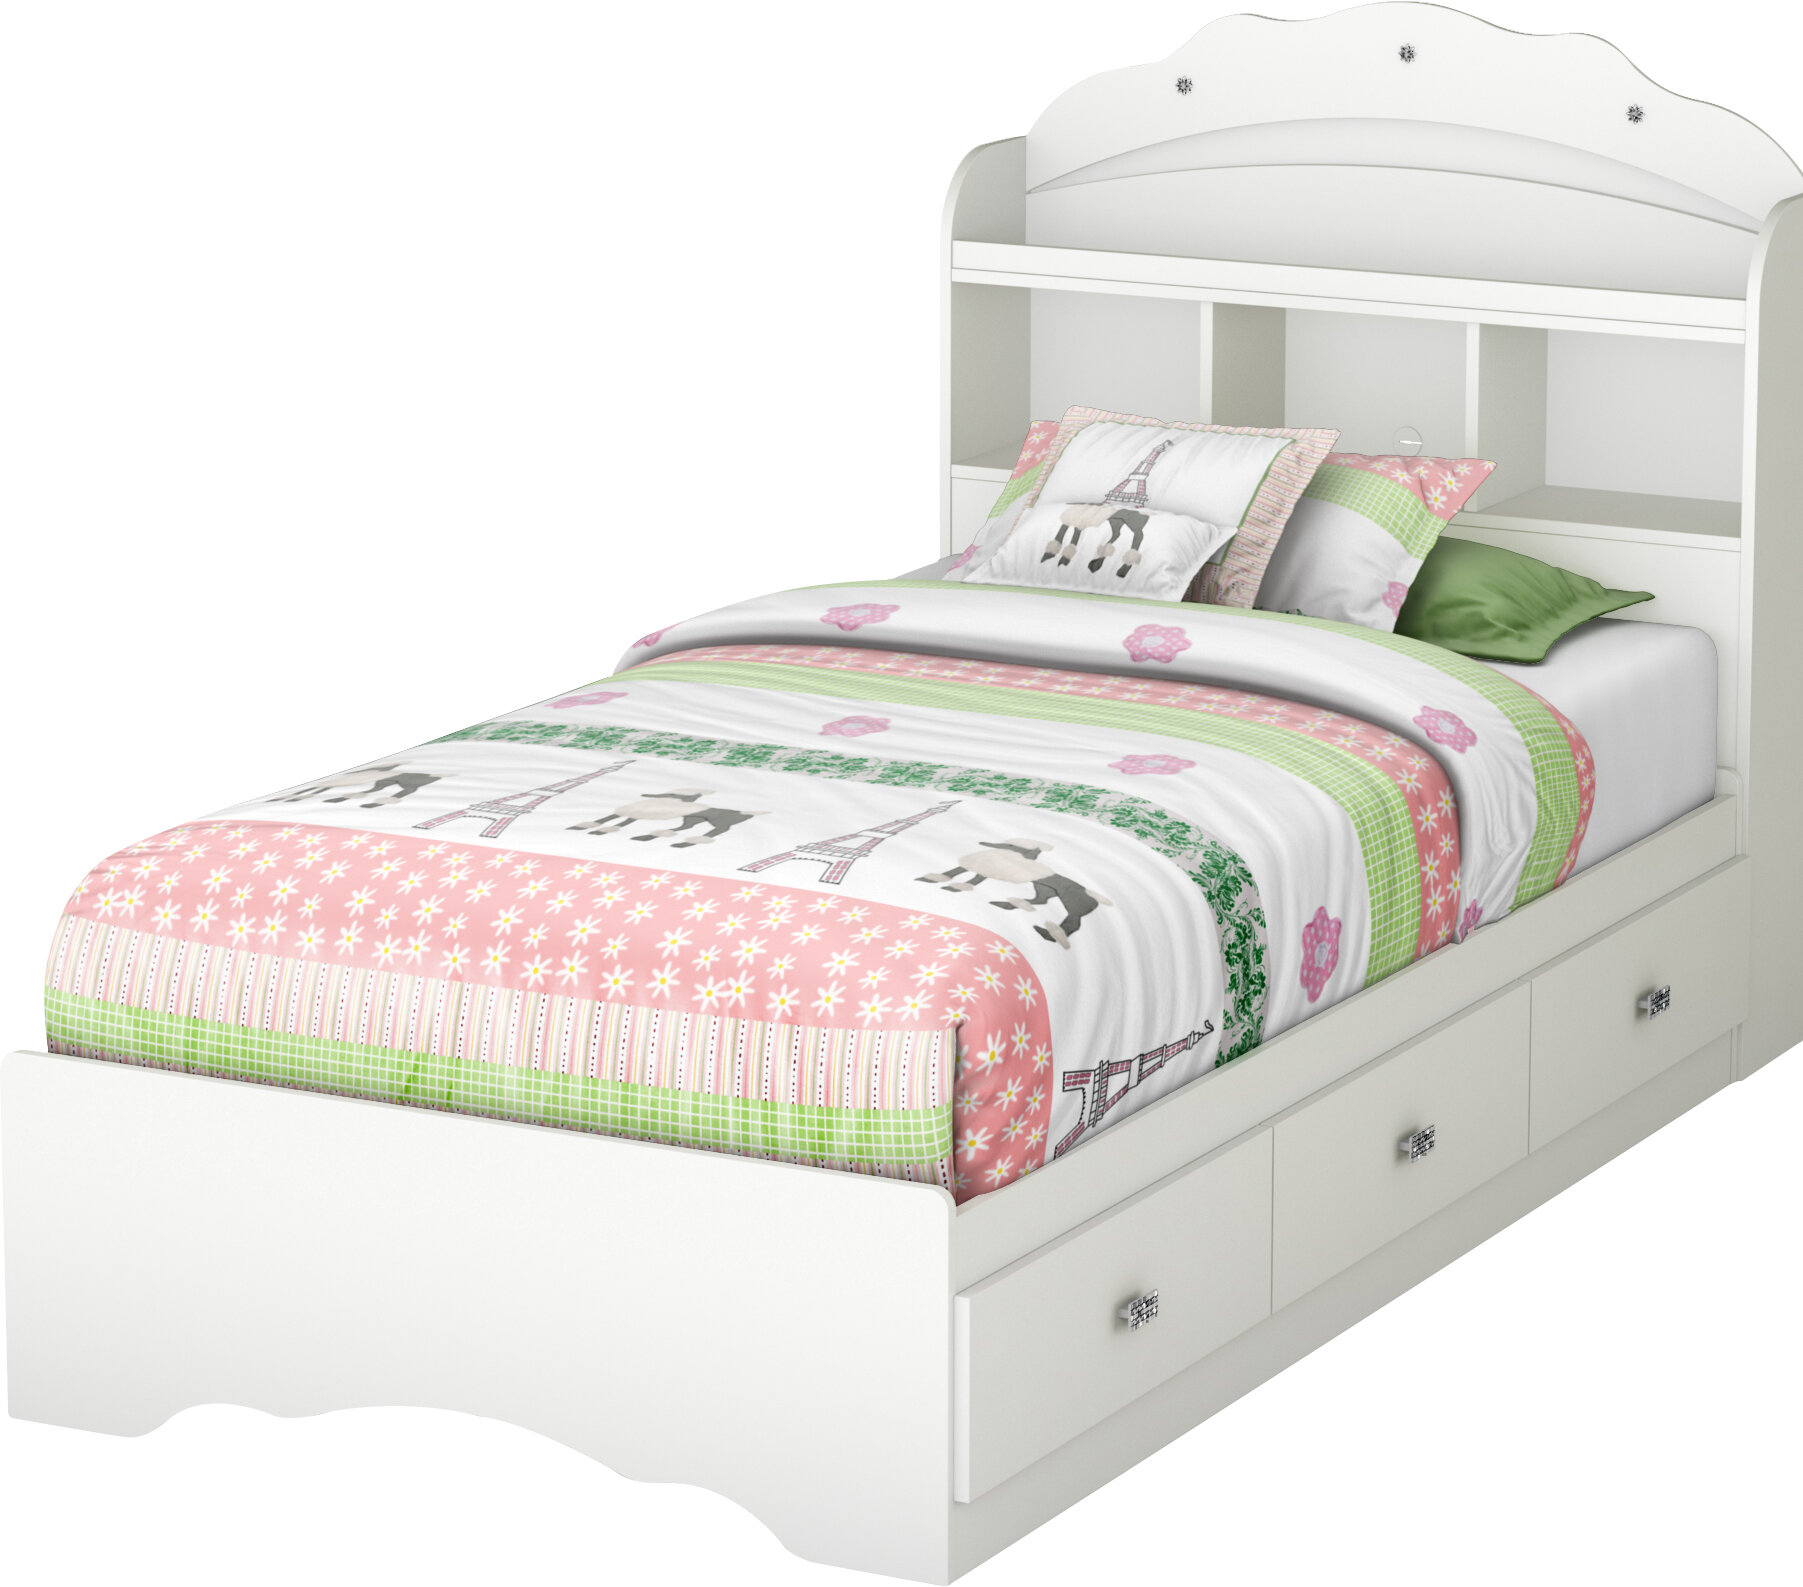 South S Tiara Twin Mate Bed With Storage And Headboard Reviews Wayfair